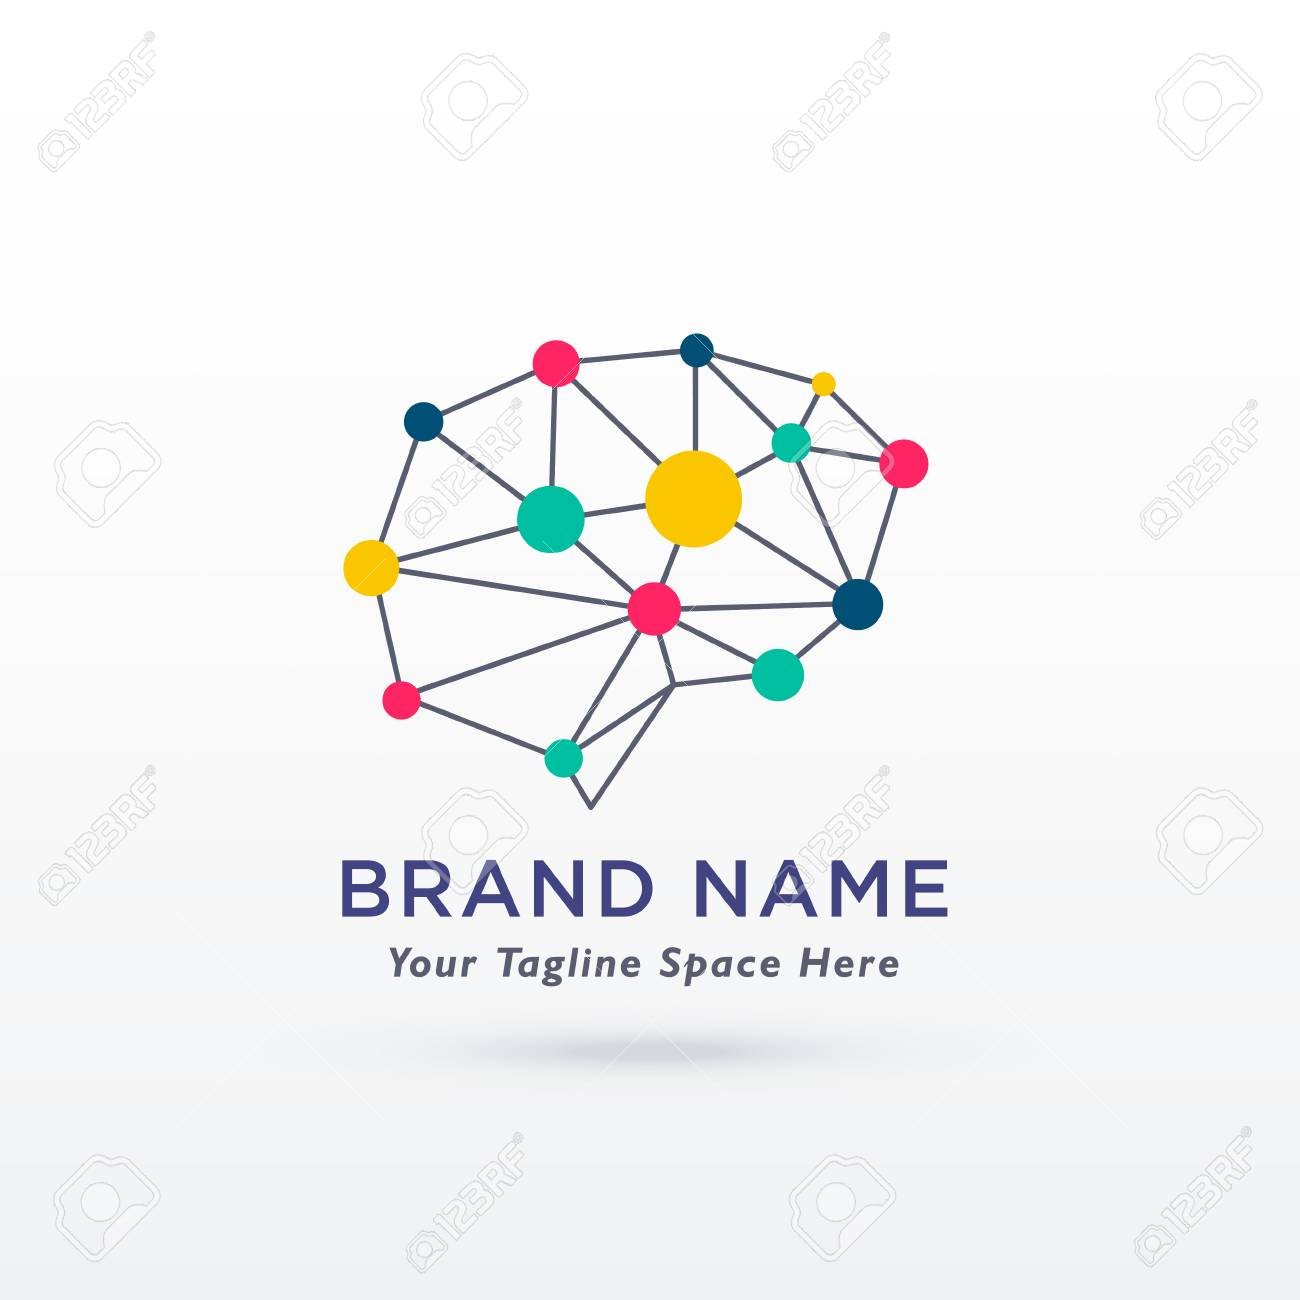 A digital brain concept design logo vector on a colorful presentation